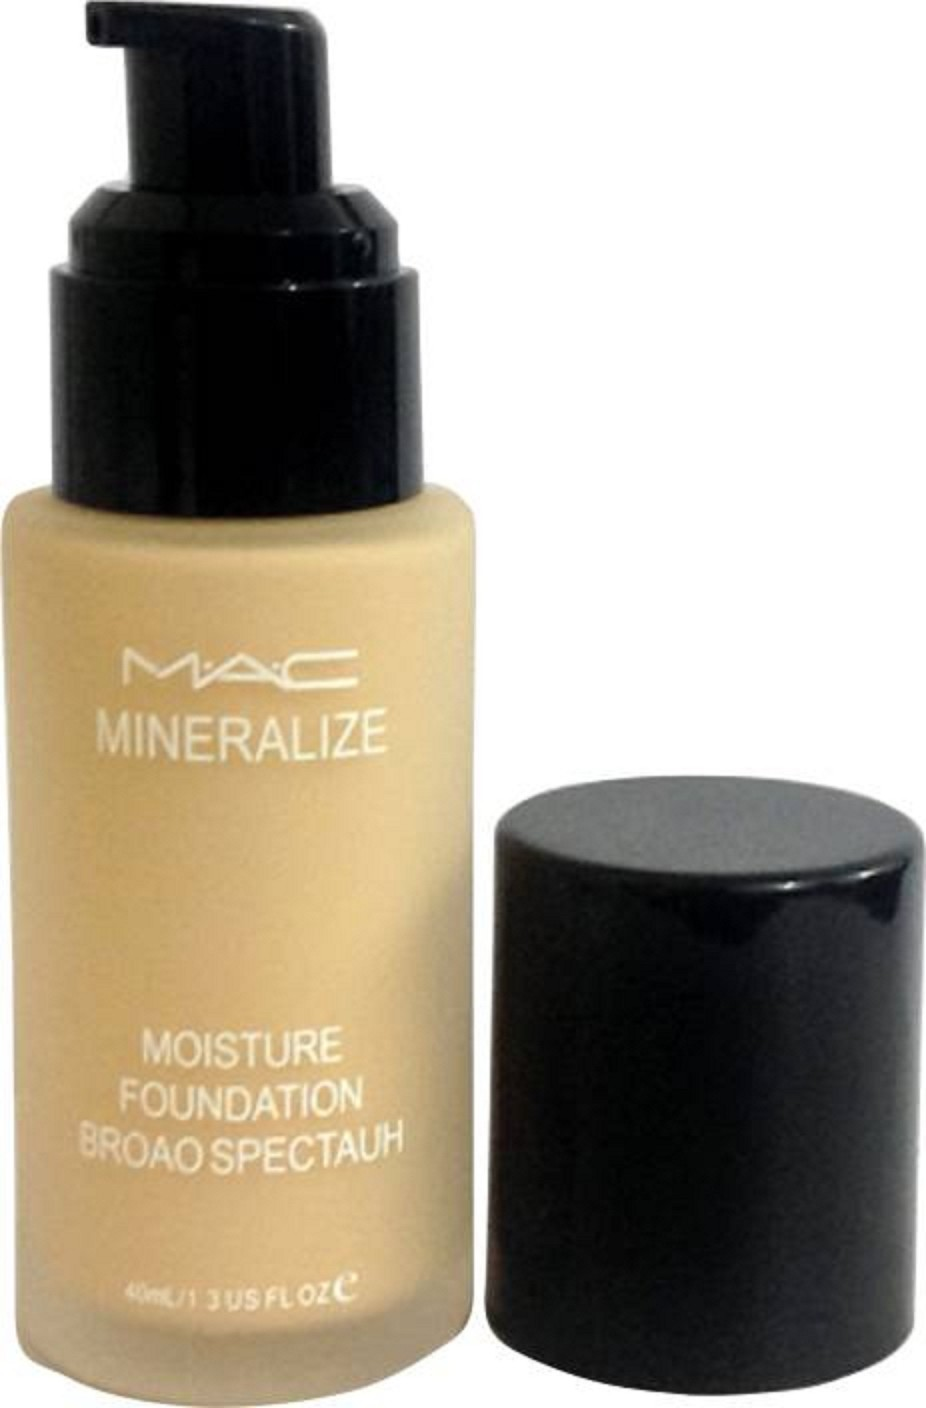 MAC Mineralize Satin Finish Foundation - 8 Best Foundations for Dry Skin Available in India with Review & Price